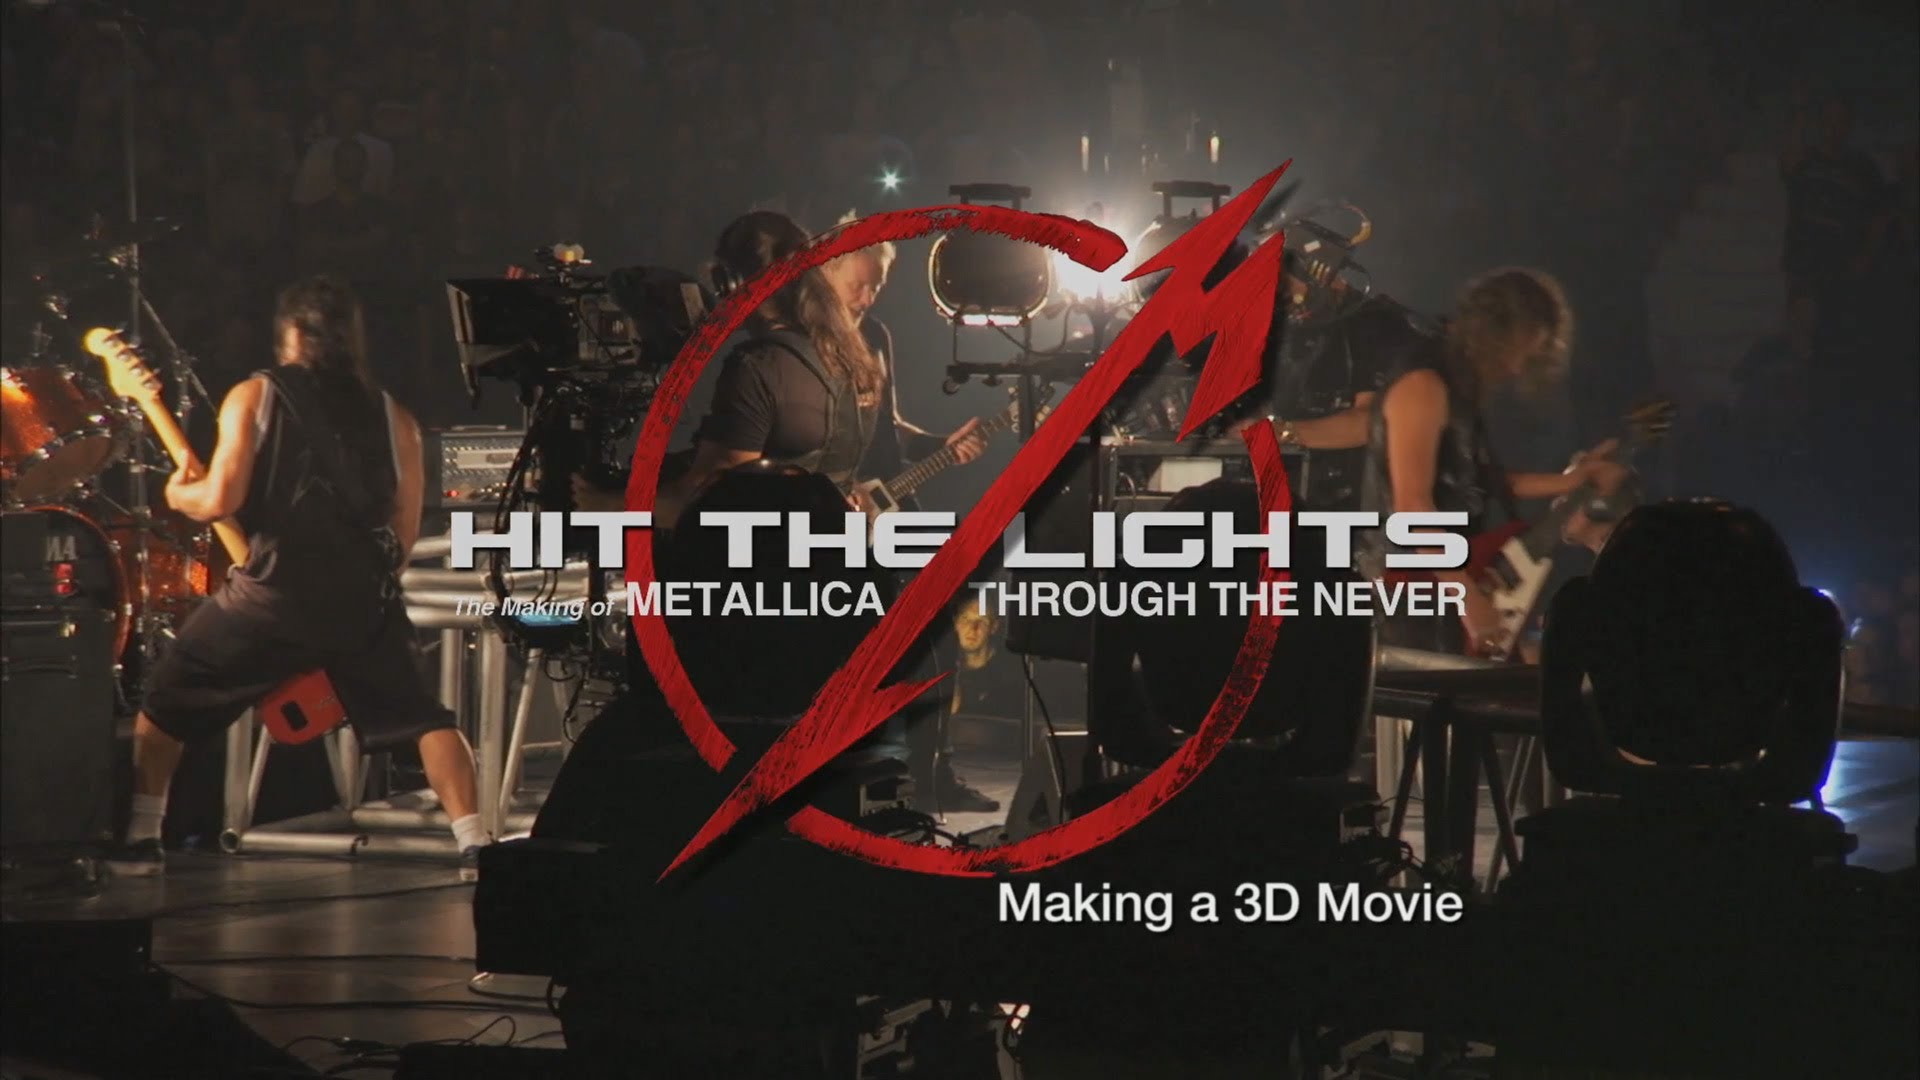 Hit the Lights The Making of Metallica Through the Never - Chapter 1 Making a 3D Movie